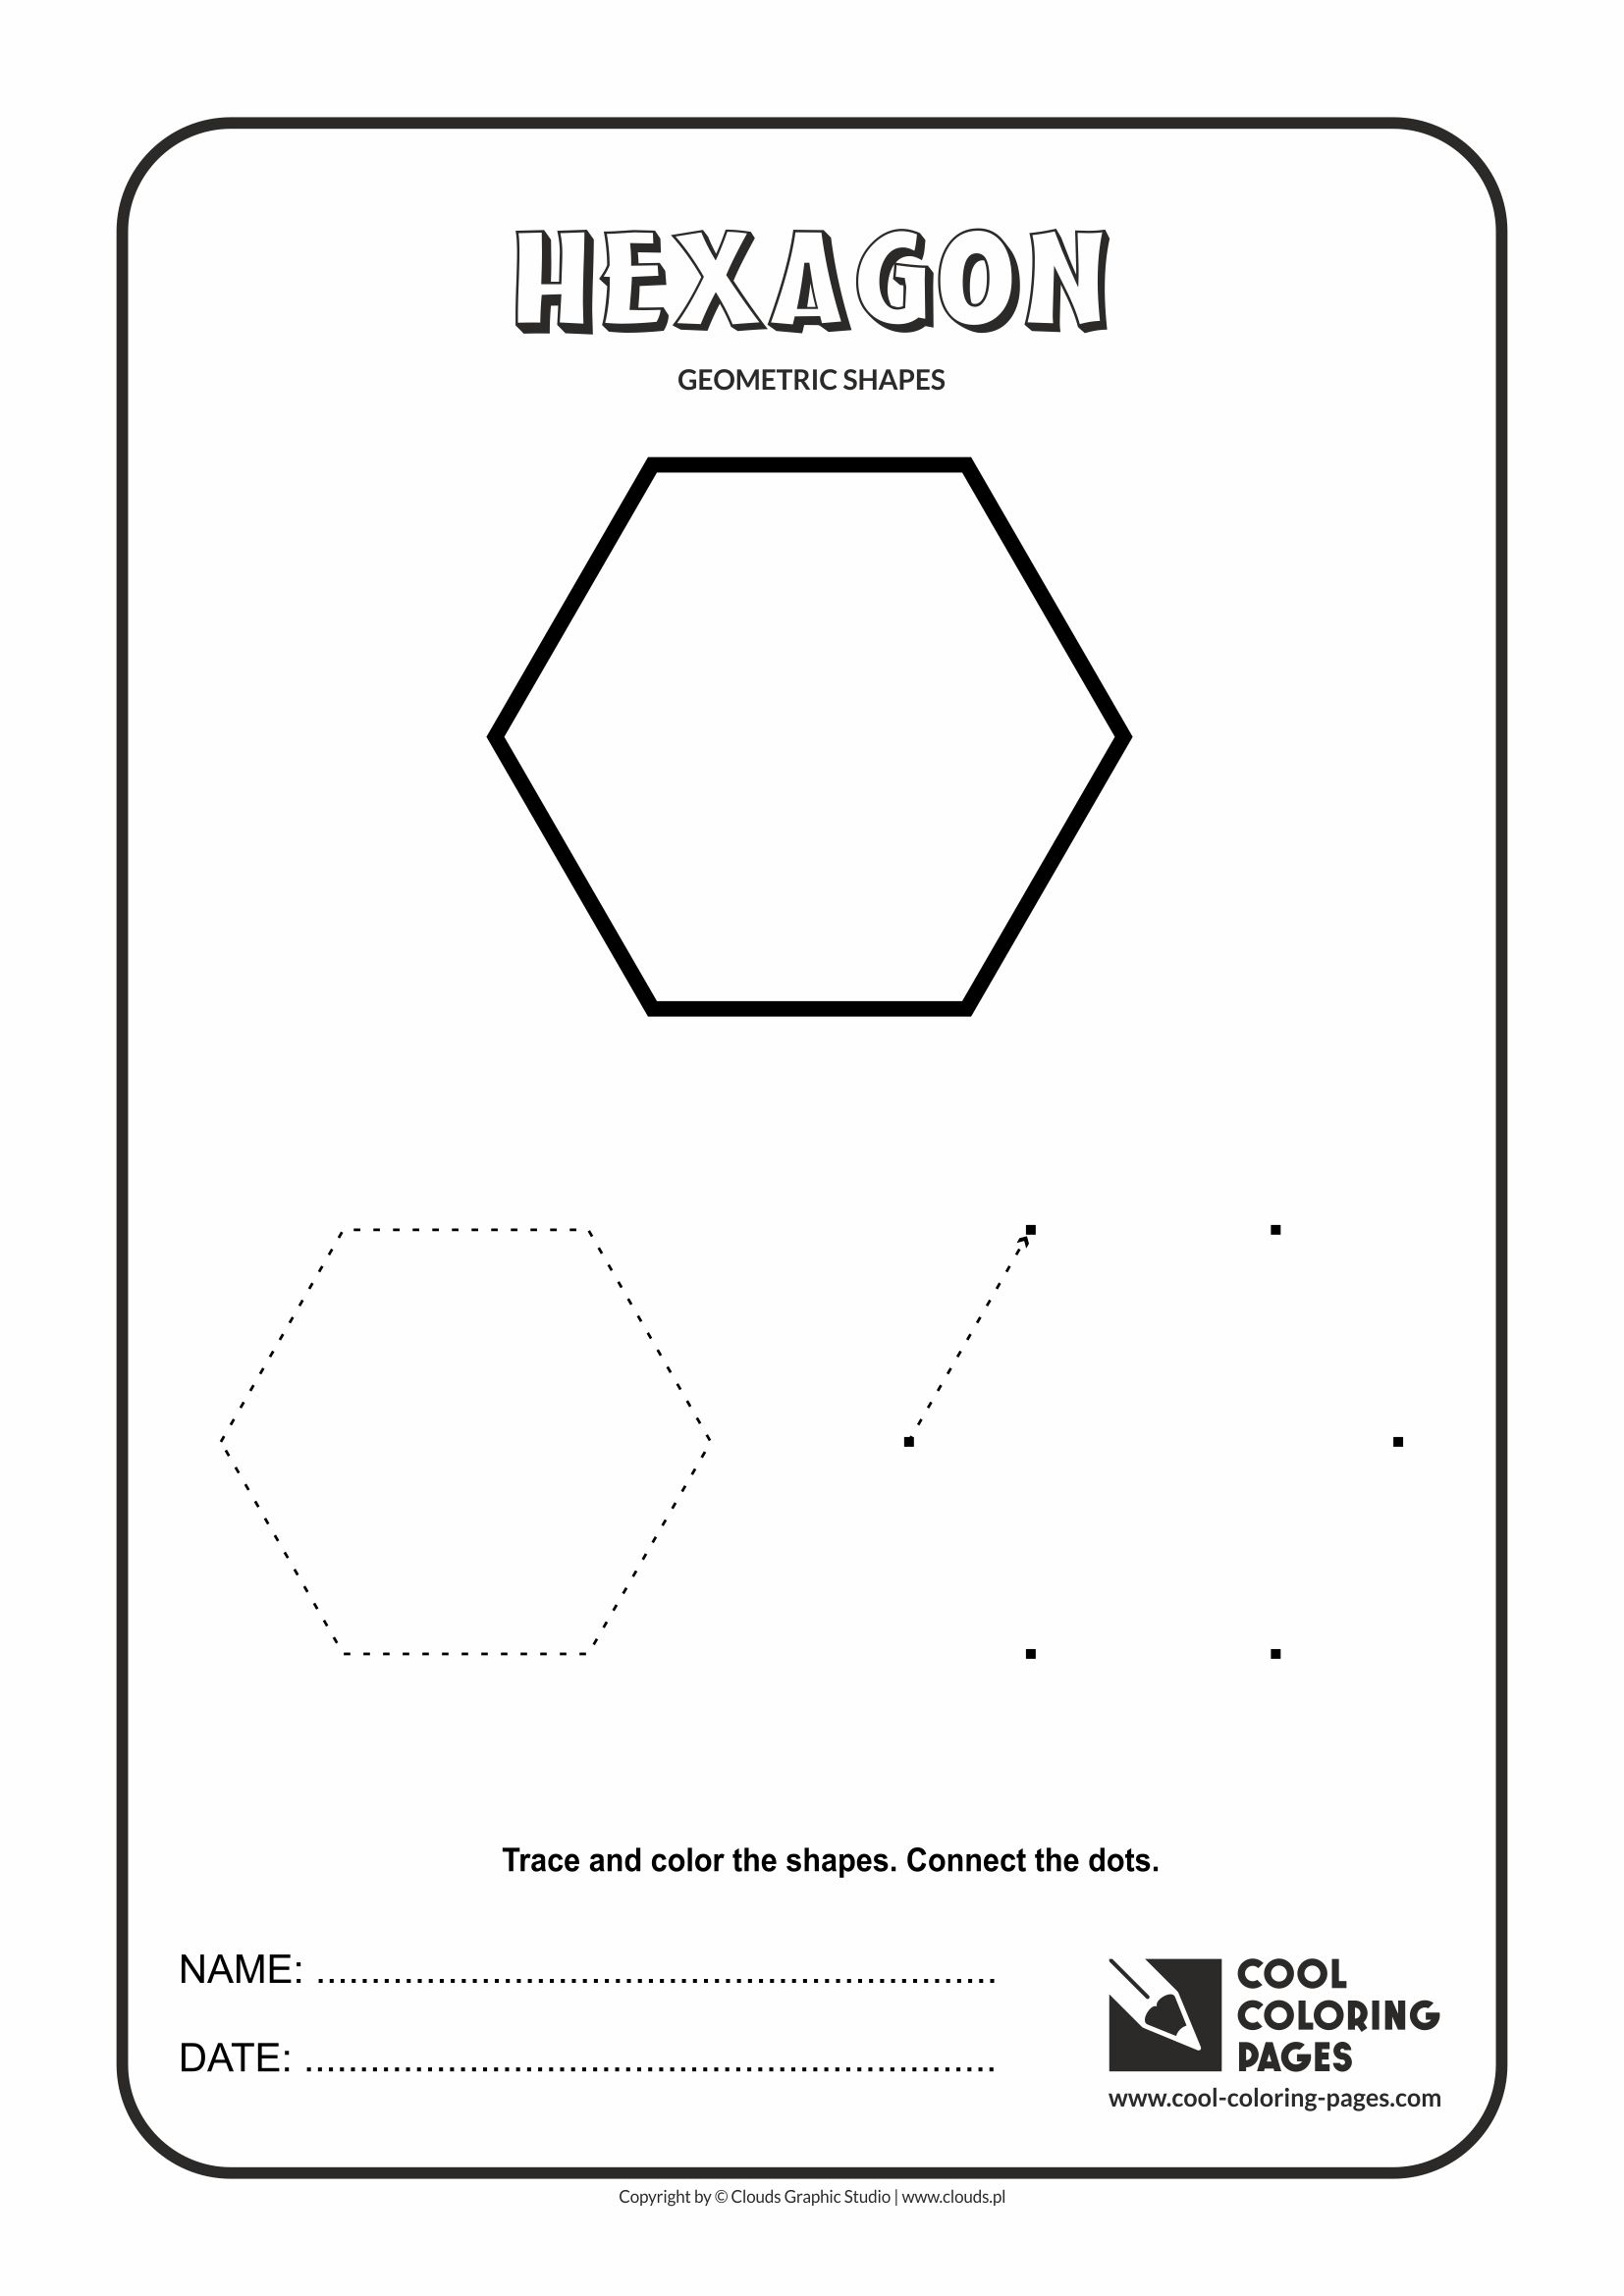 Cool Coloring Pages Geometric Shapes - Cool Coloring Pages | Free - Free Printable Geometric Shapes